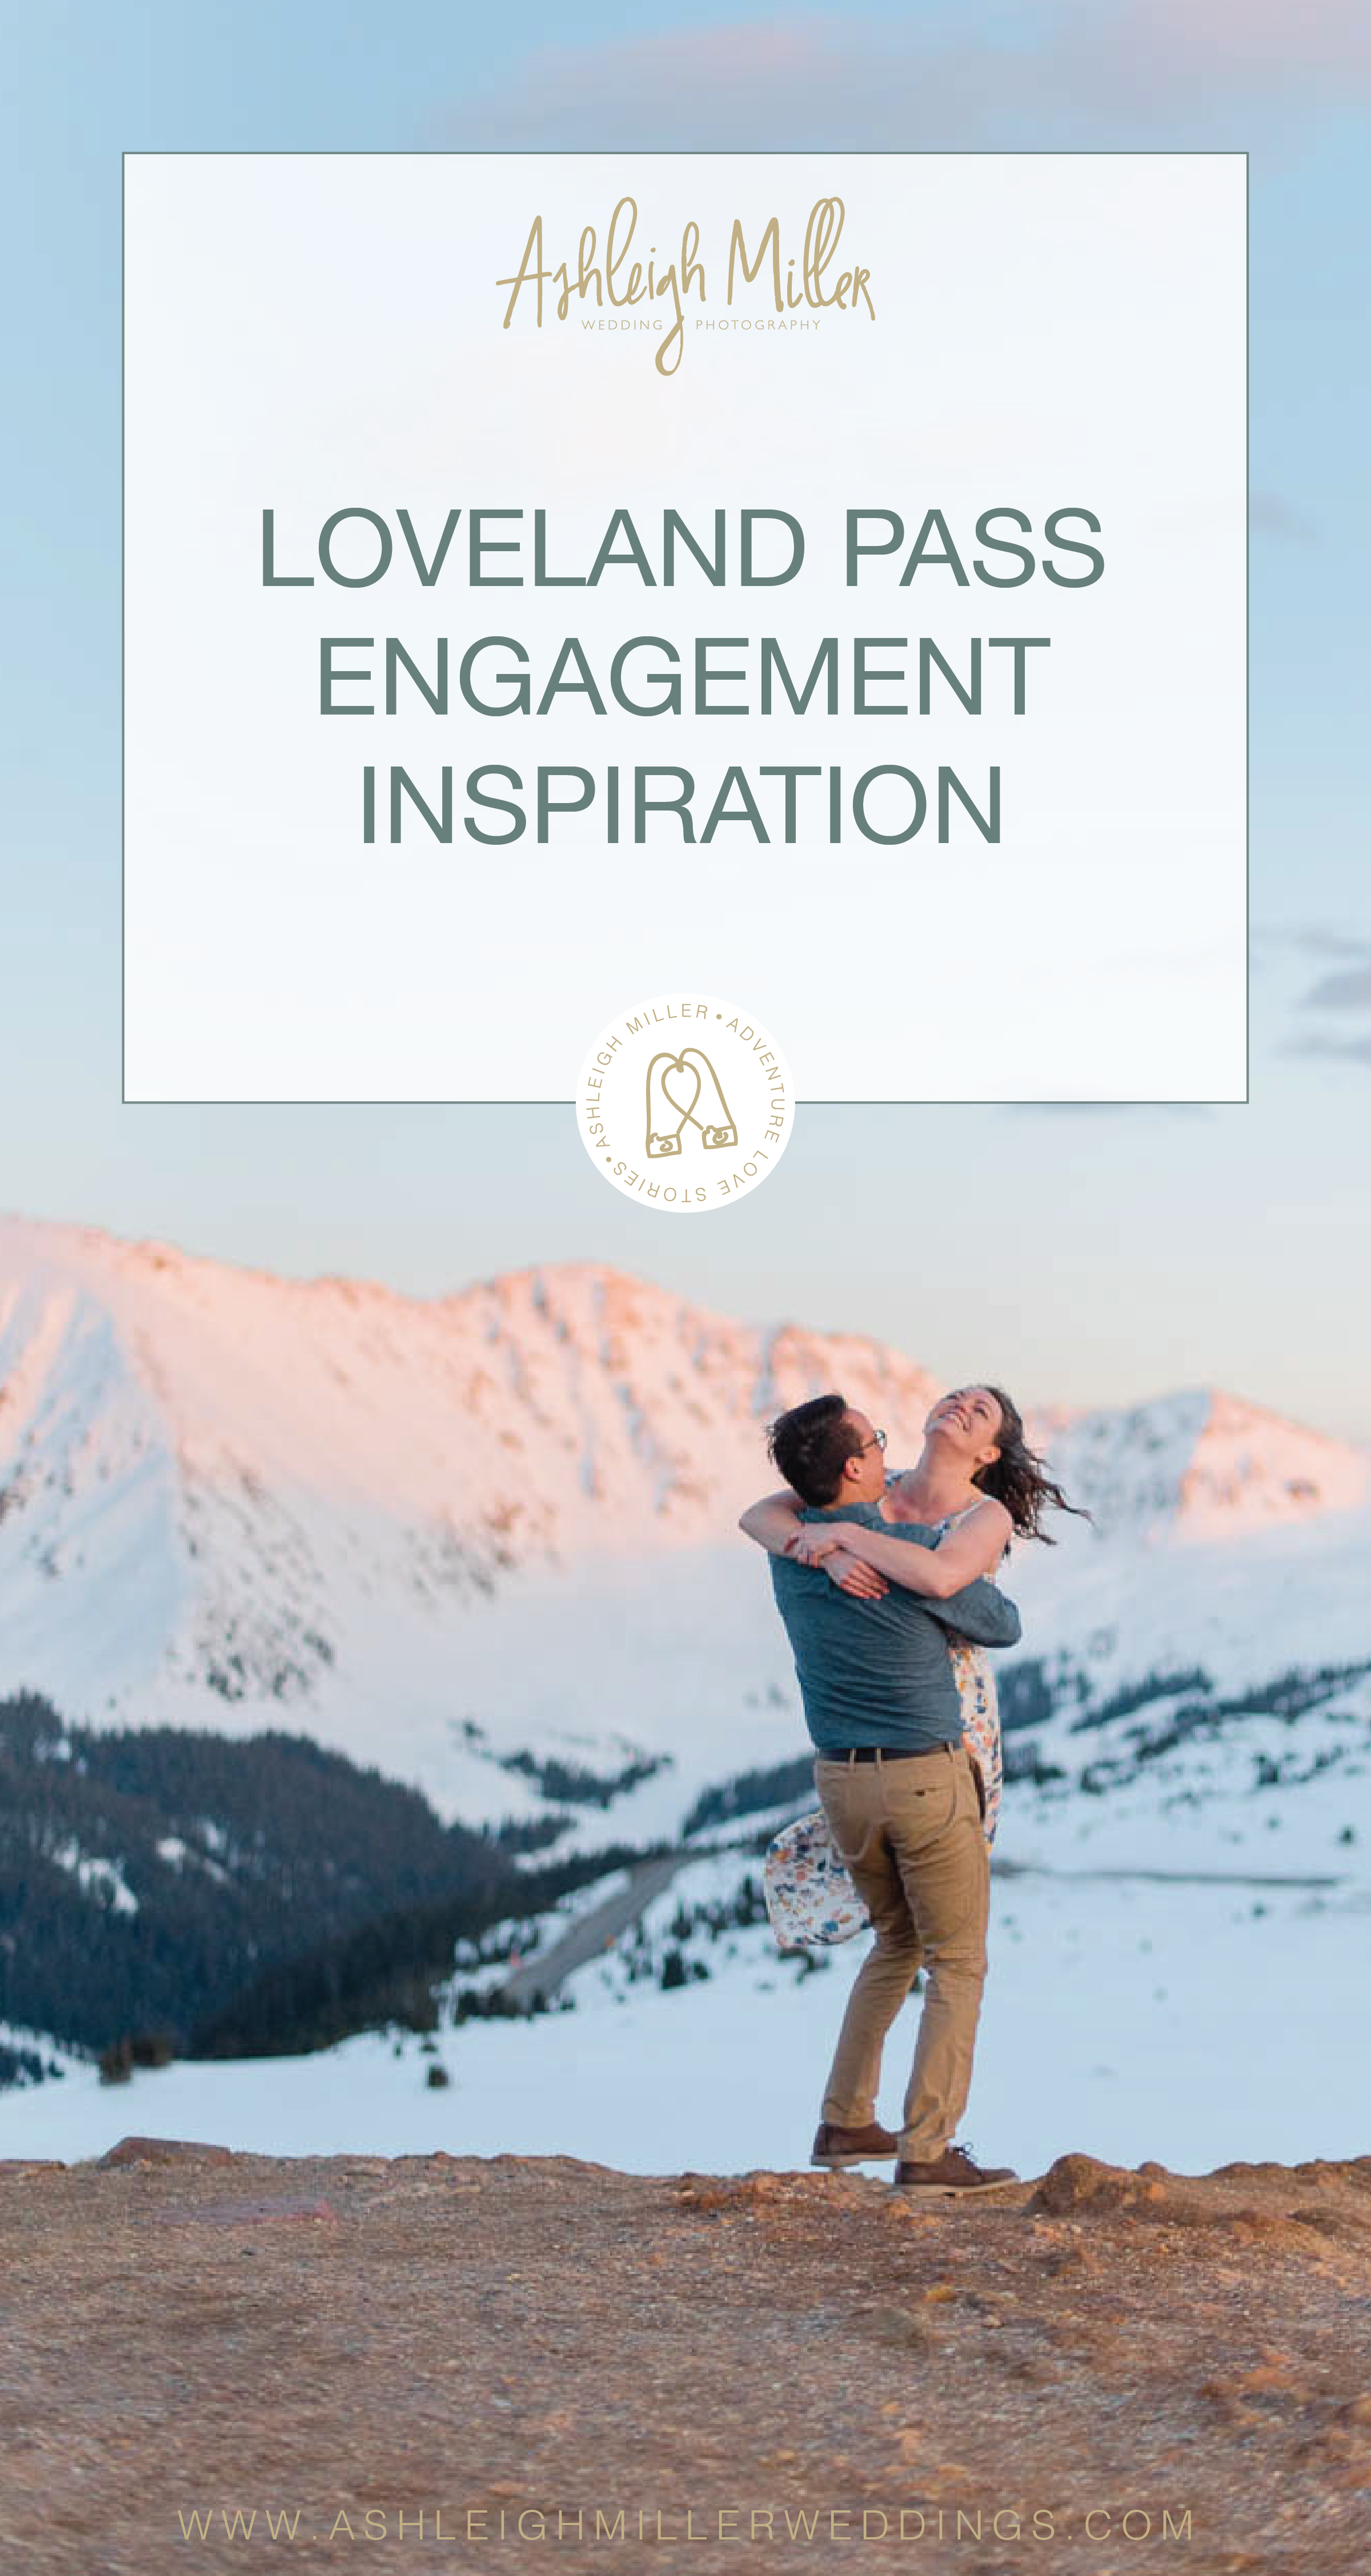 Colorado hiking adventure engagement sessions inspiration on a mountaintop. This Loveland Engagment Session was perfect with dresses, laughing, dancing, alpine glow, and love. Ashleigh Miller Wedding and Elopement Photographer serving Denver, Breckenridge, Summit, Dillion, Silverthorn, Telluride, Ouray and Boulder.